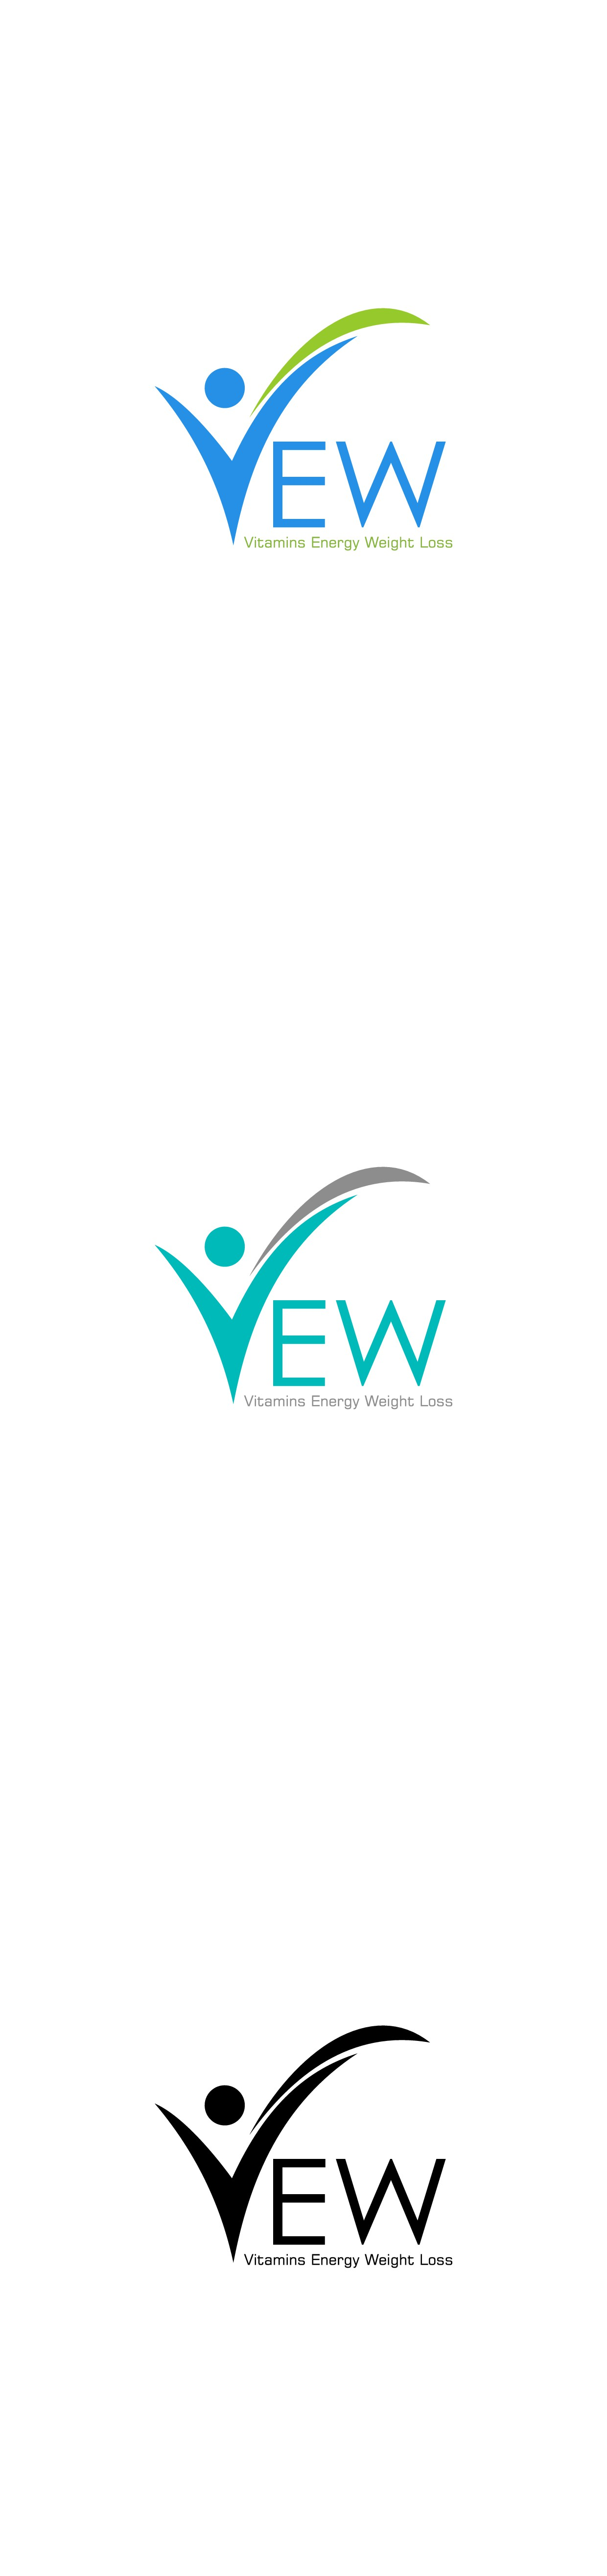 Health and weight loss new company logo